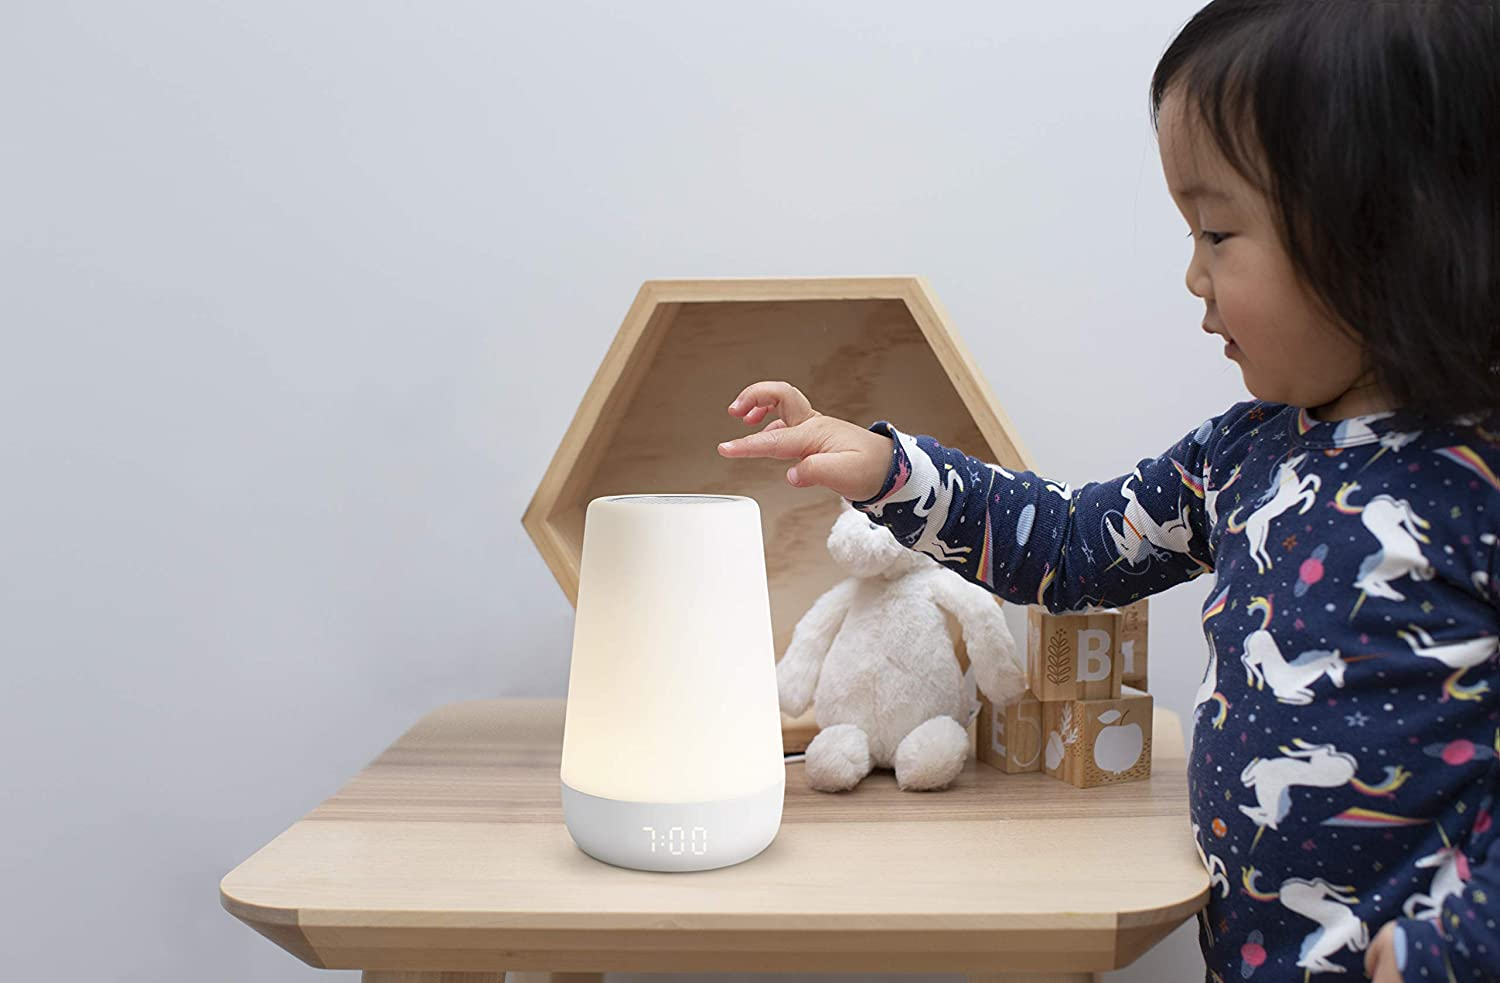 Hatch Rest+ Baby Sound Machine, Night Light, Time-to-Rise Plus Audio Monitor, White Noise Soother, Toddler Sleep Trainer, Kids Alarm Clock, Nightlight - -